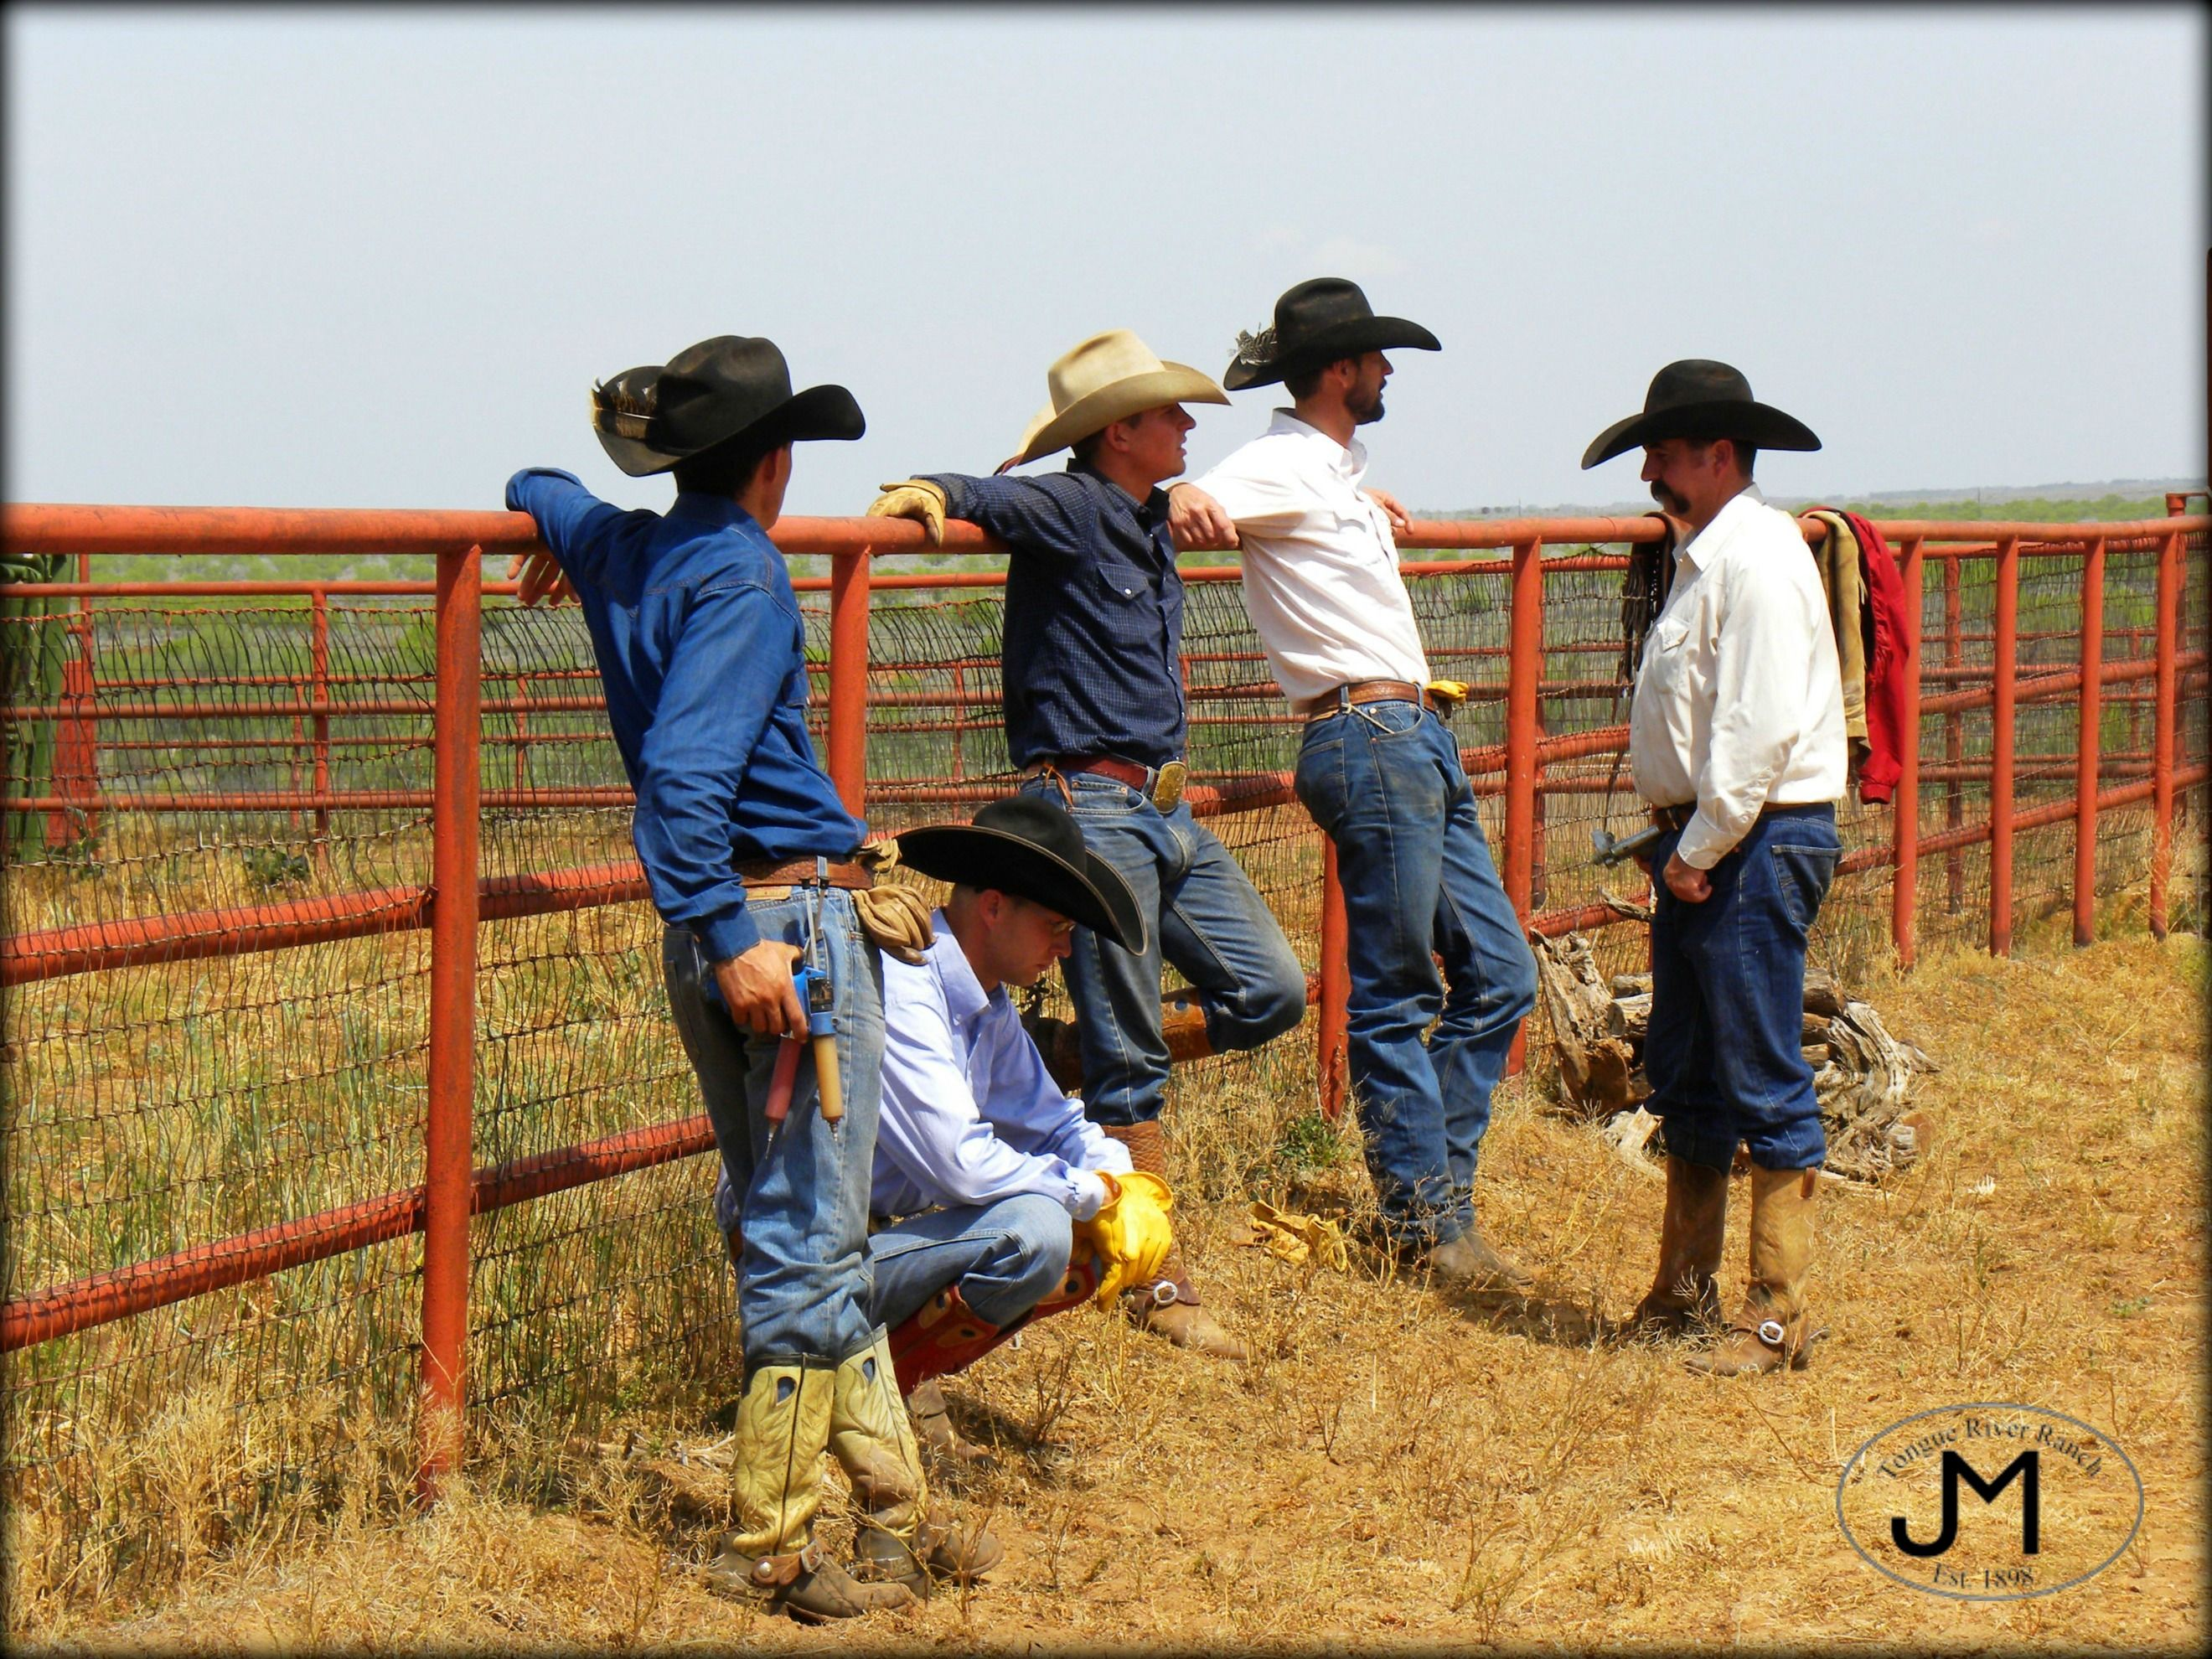 Cowboys and ranchers